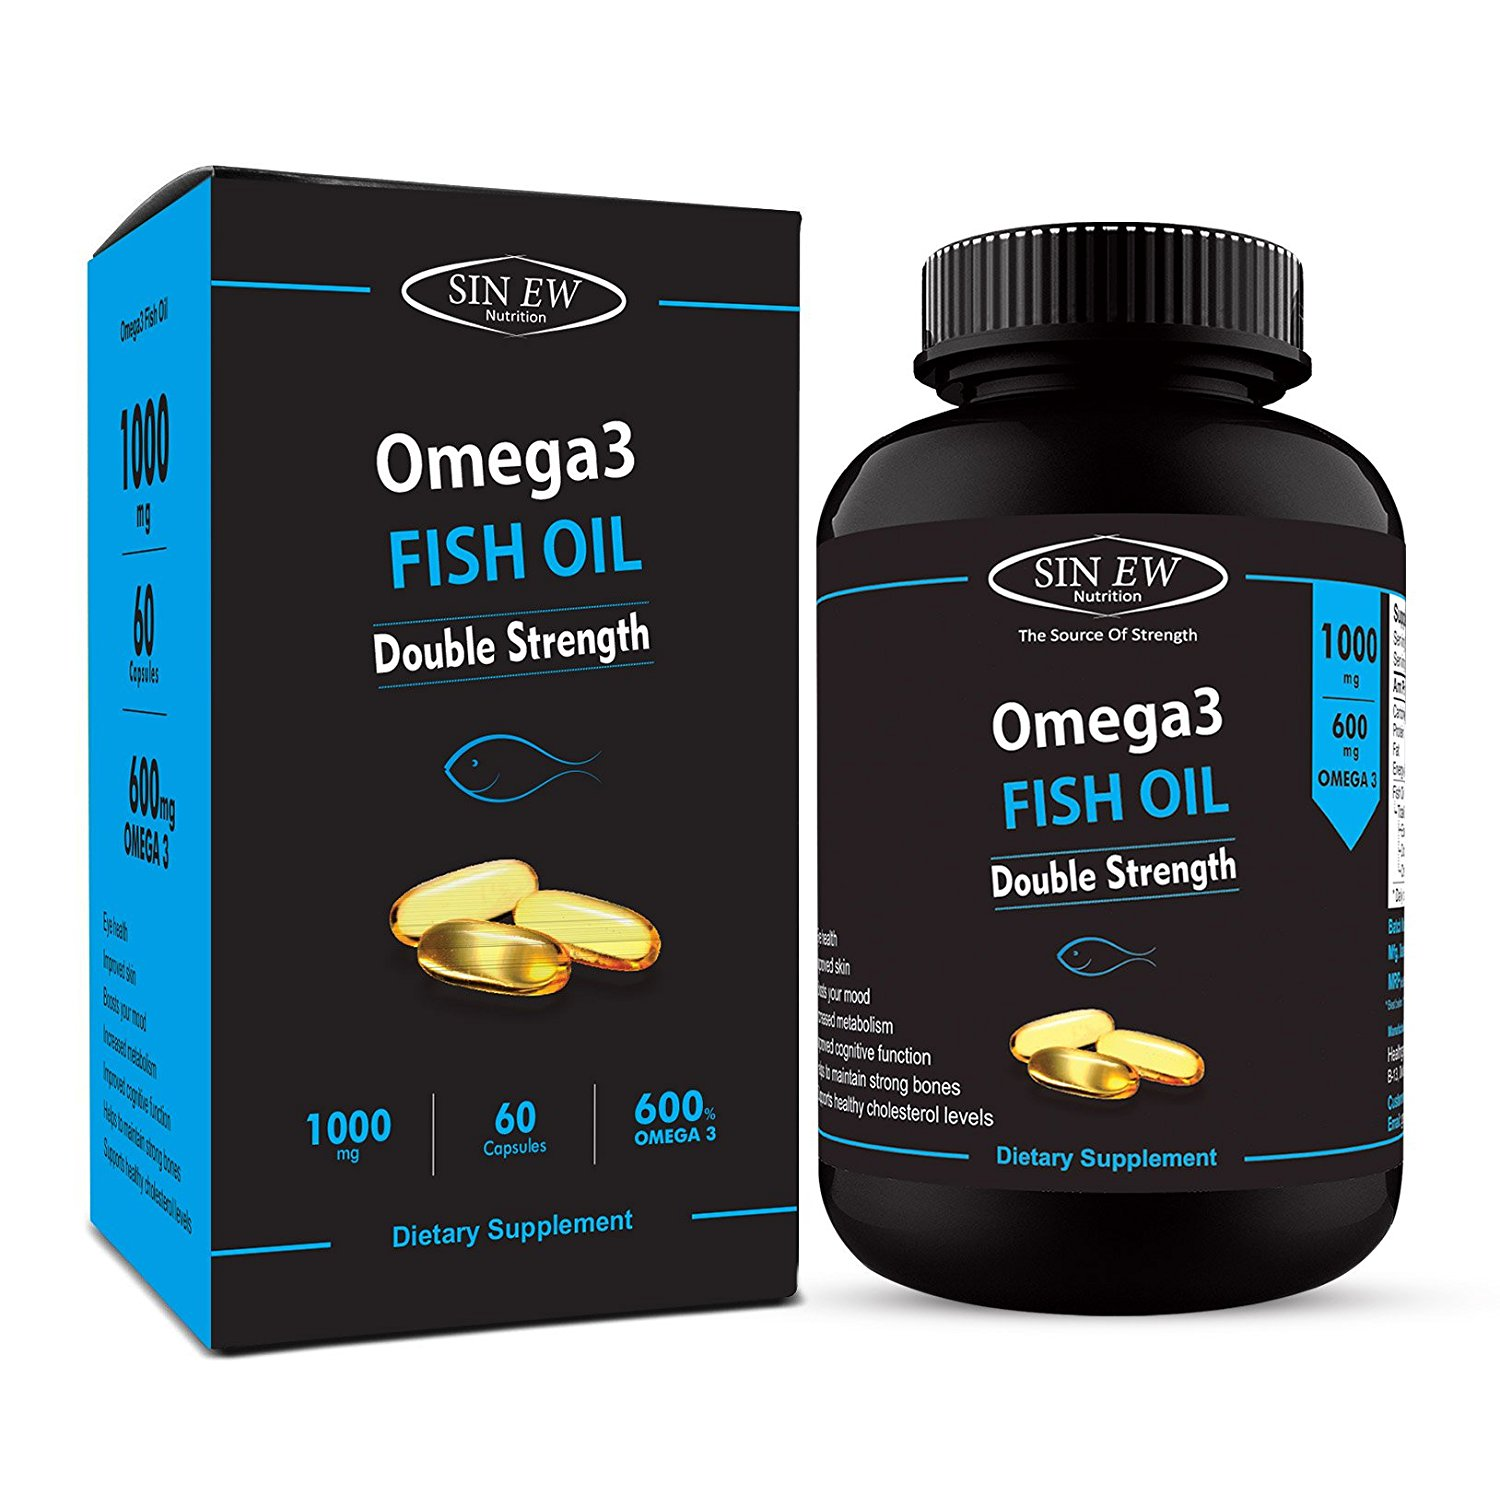 Sinew Nutrition Omega 3 Fish Oil (300EPA & 200DHA) 1000mg (Double Strength) – 60 Softgels